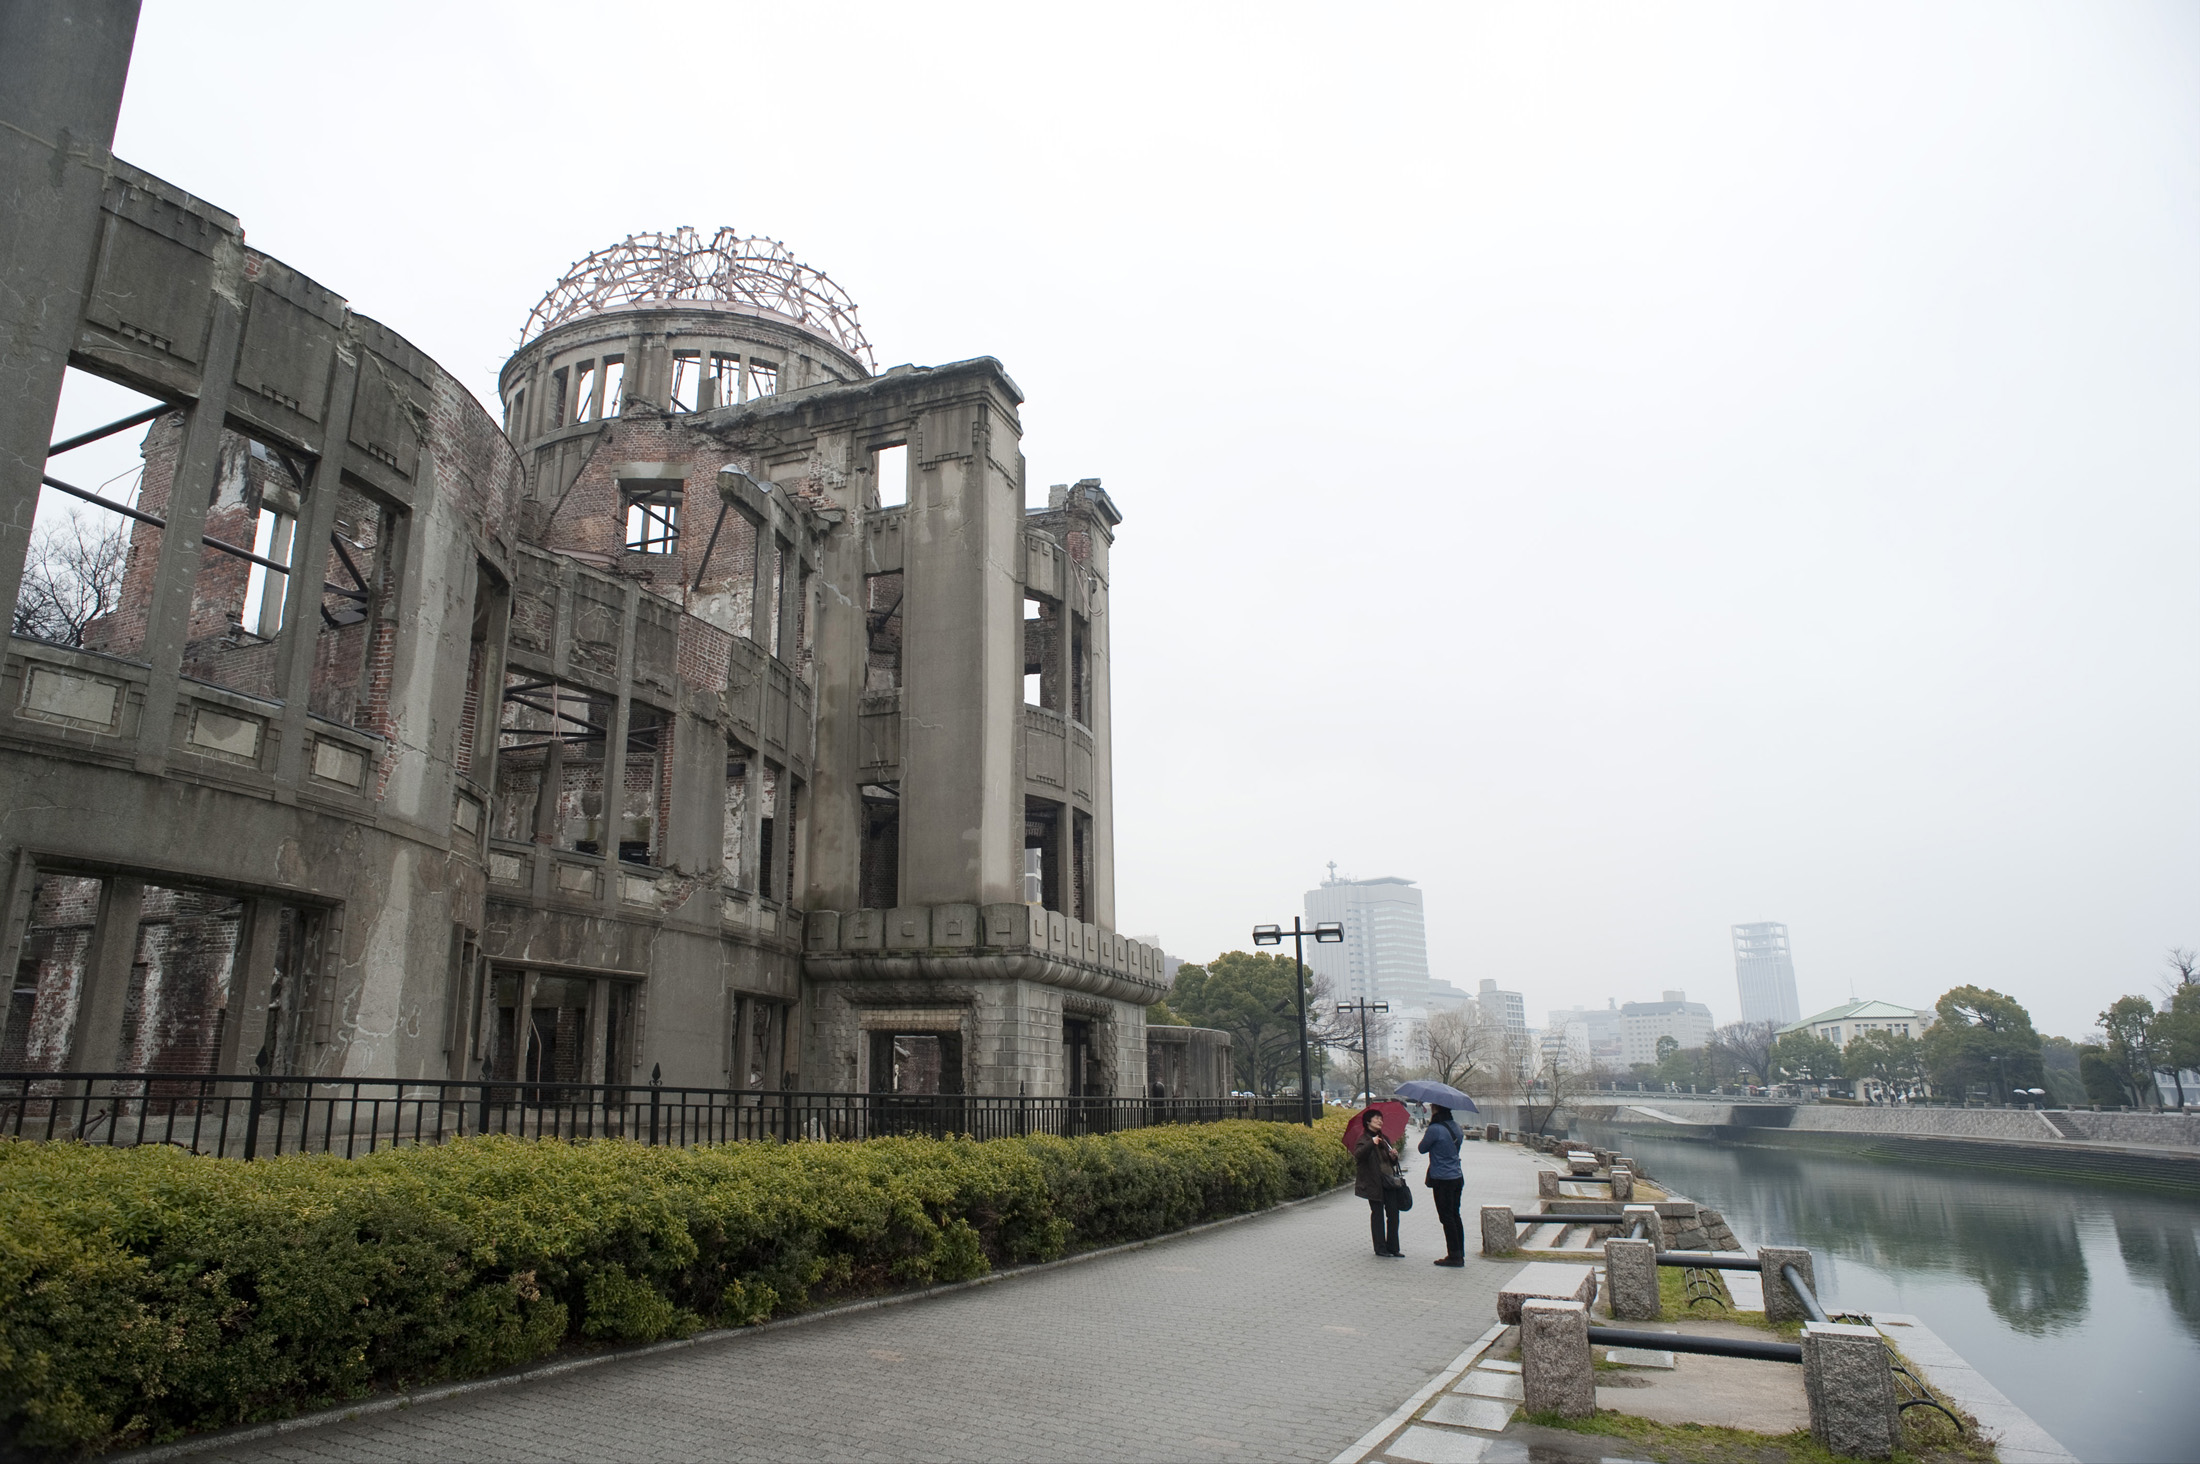 the Hiroshima atomic bomb dome, commonly called the Atomic Bomb Dome or A-Bomb Dome, Genbaku Dome